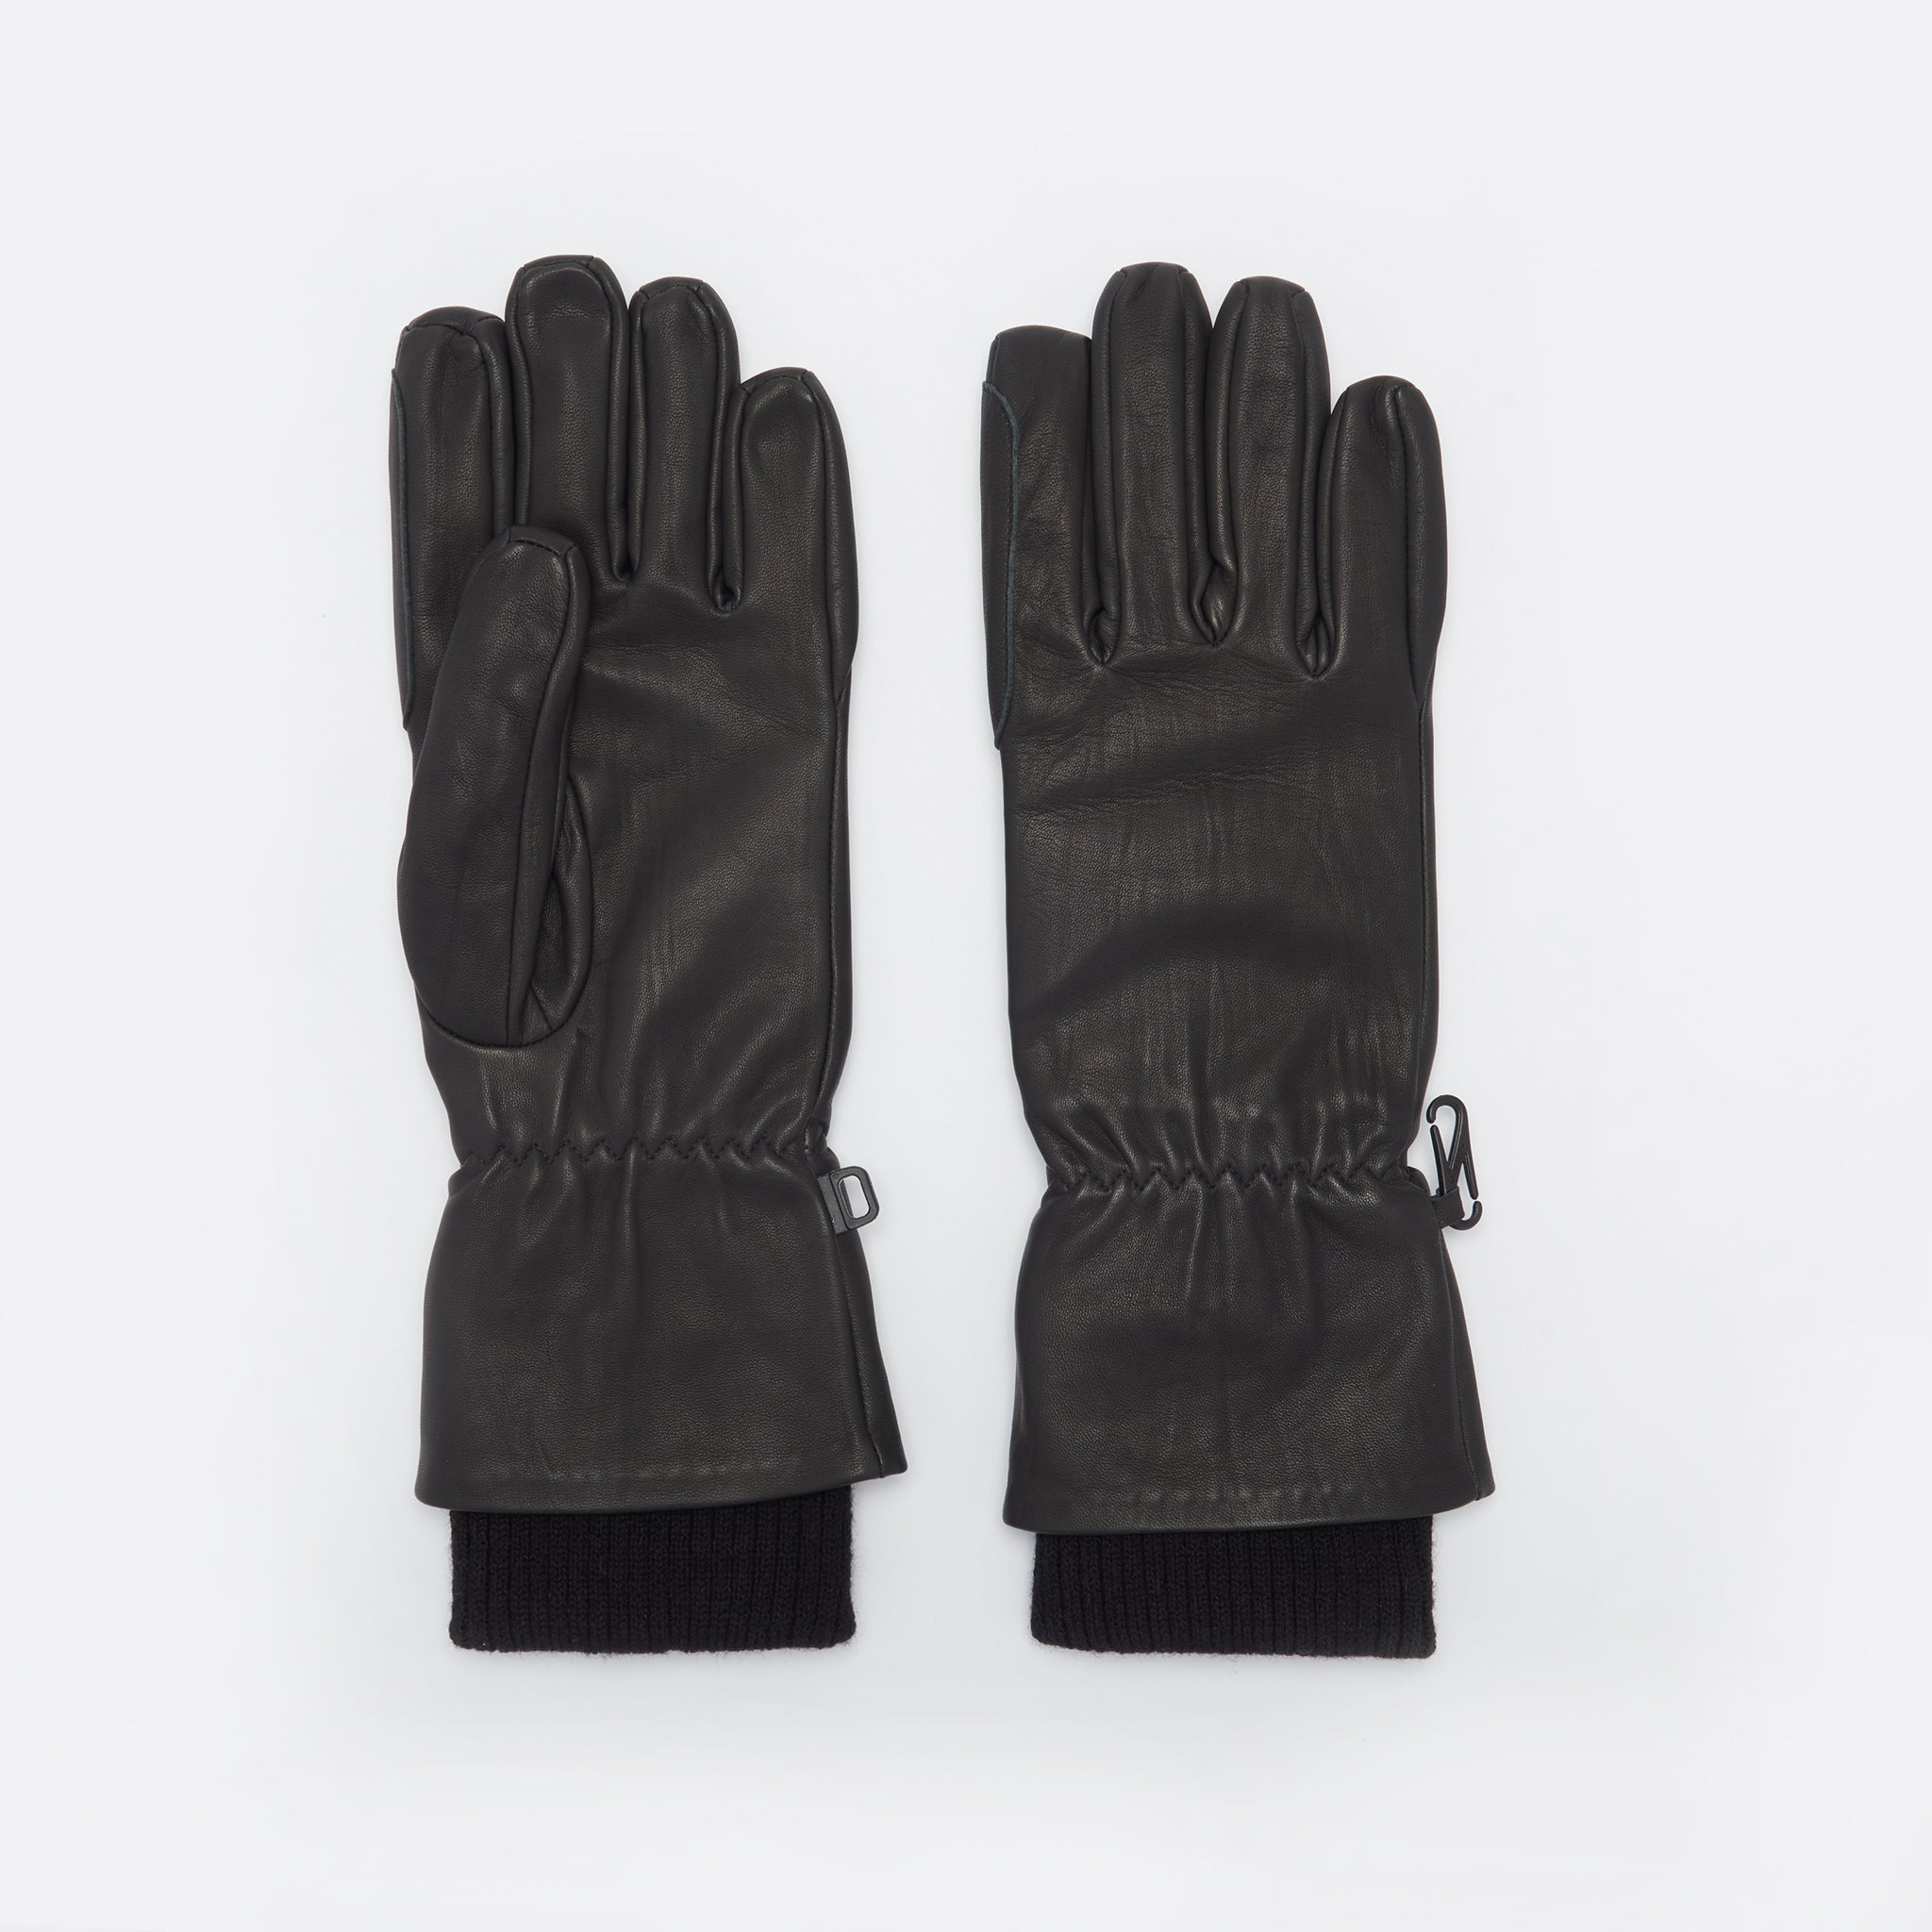 Filippa K Work Glove in Black